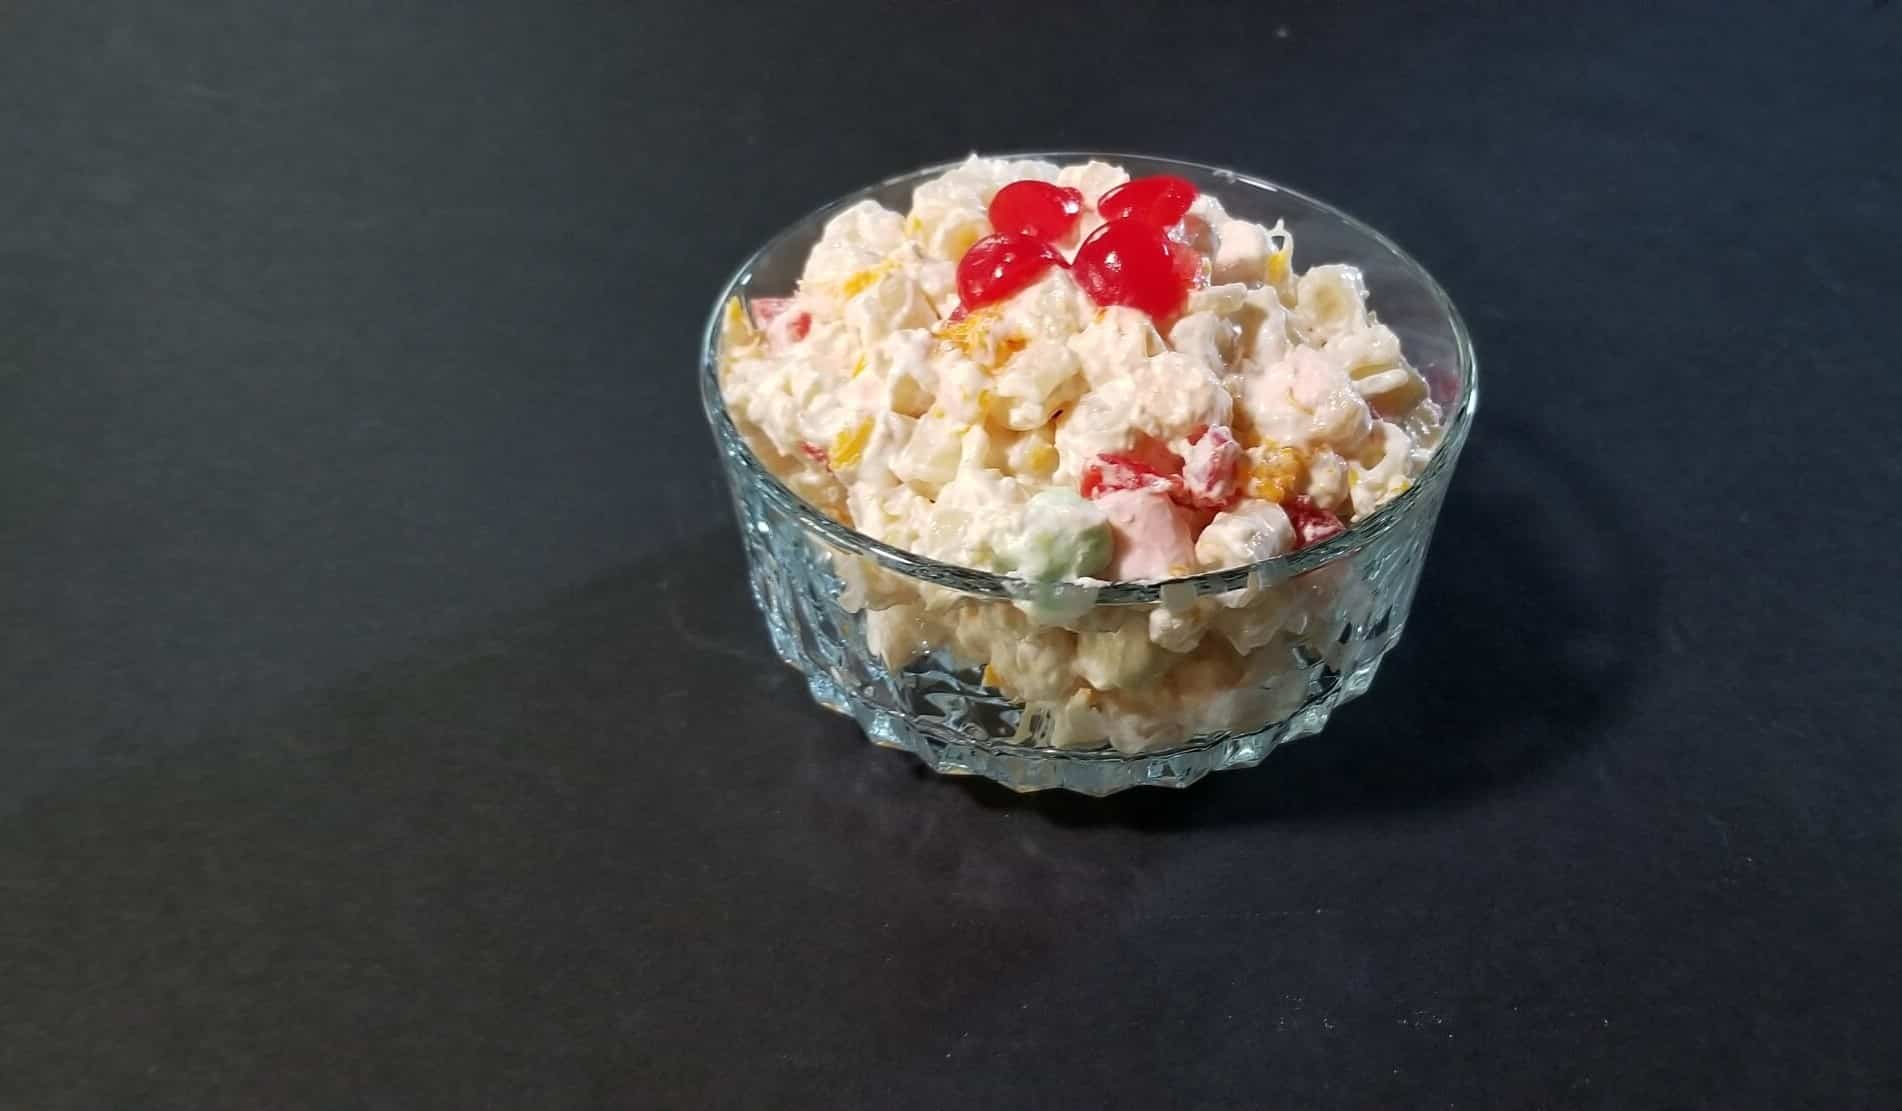 bowl of pasta salad with marshmallows and maraschino cherries on top